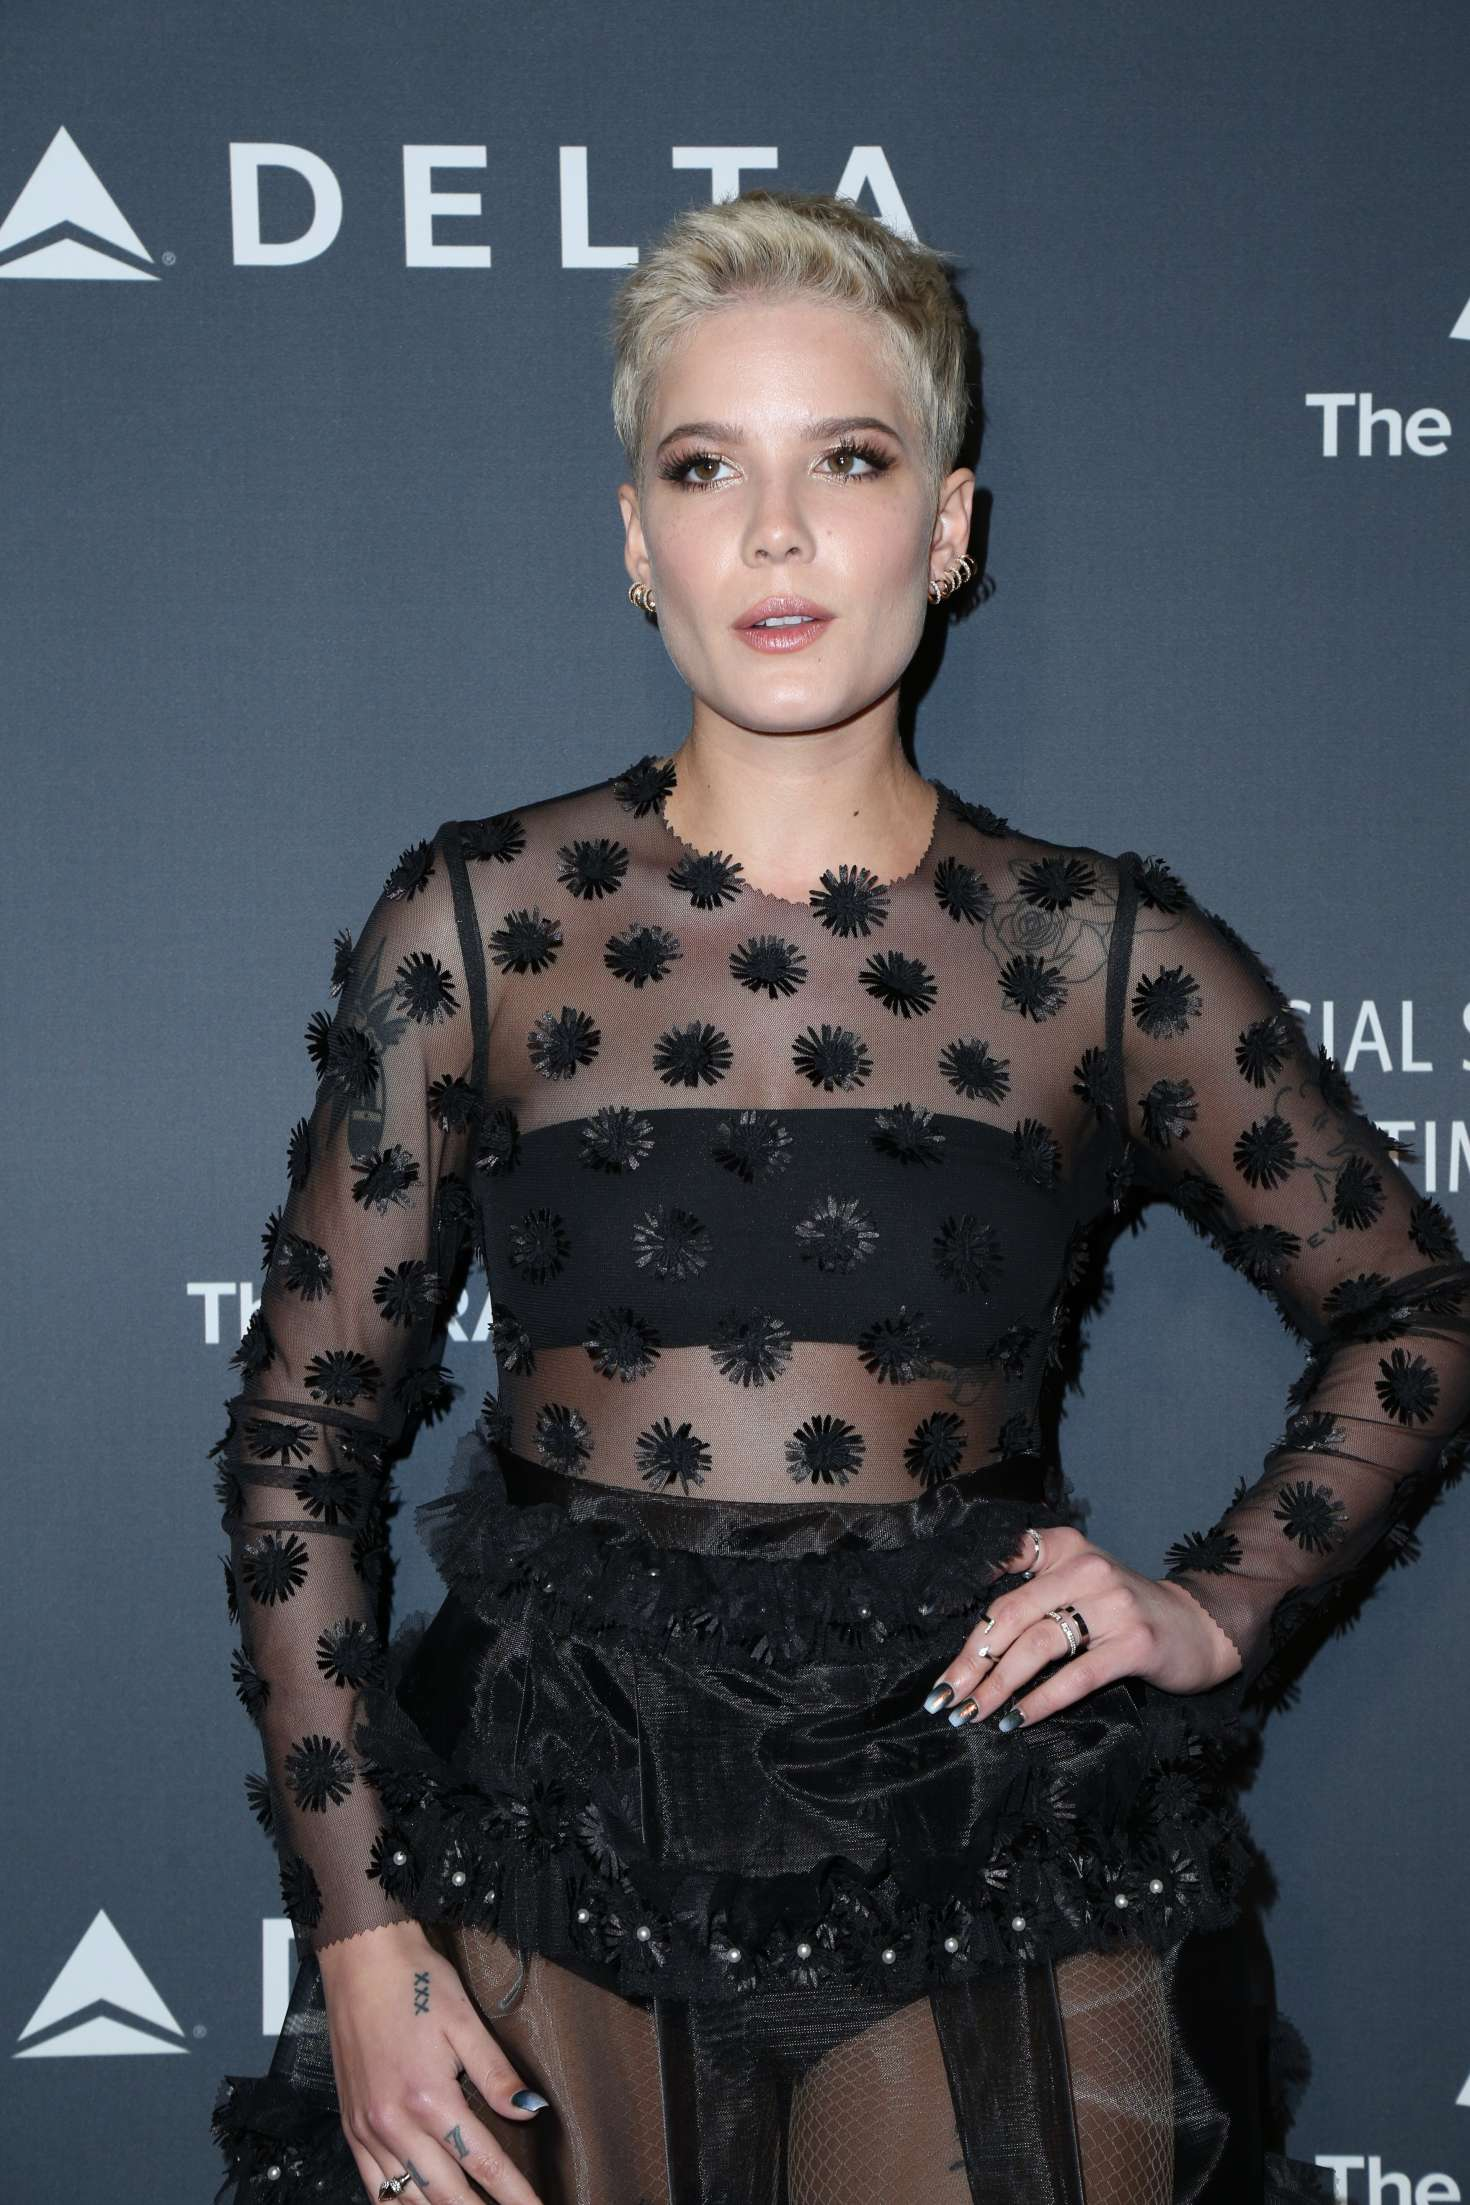 Halsey - 2017 Delta Air Lines Official Grammy Event in Los Angeles